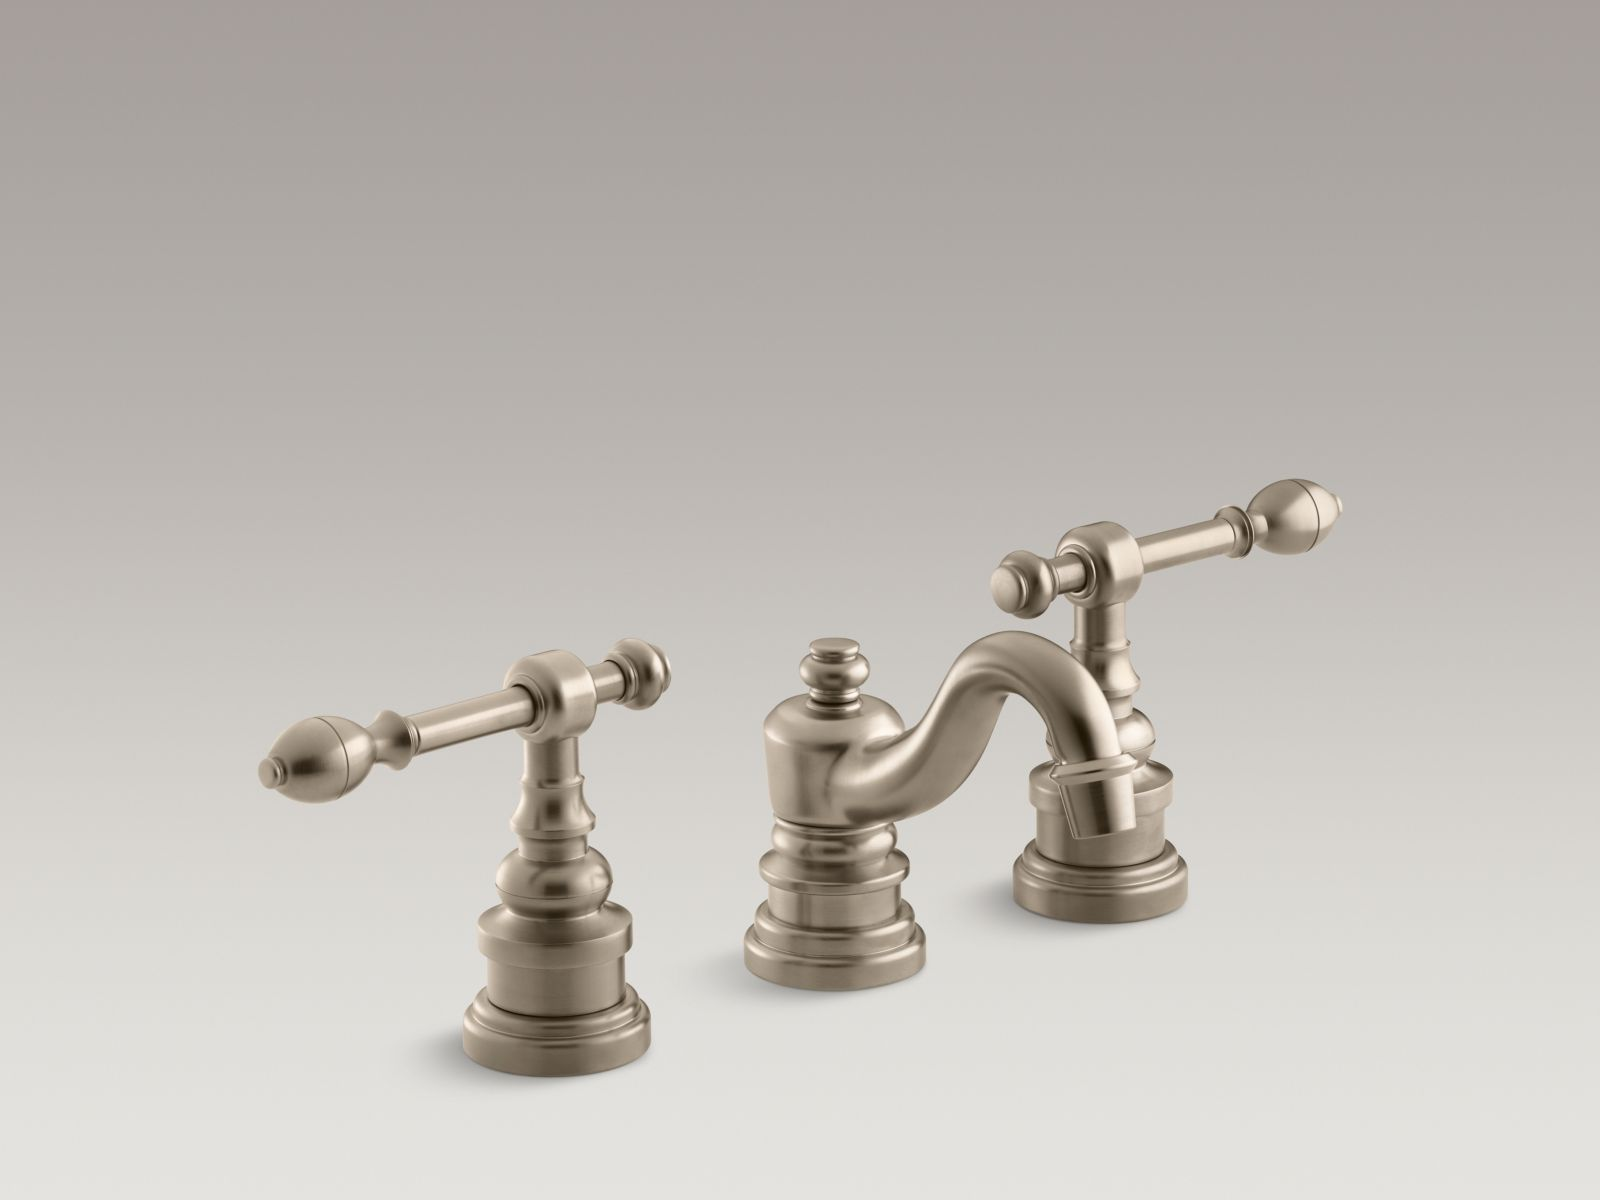 Kohler K-6811-4-BV IV Georges Brass Widespread Bathroom Sink Faucet with Lever Handles Vibrant Brushed Bronze